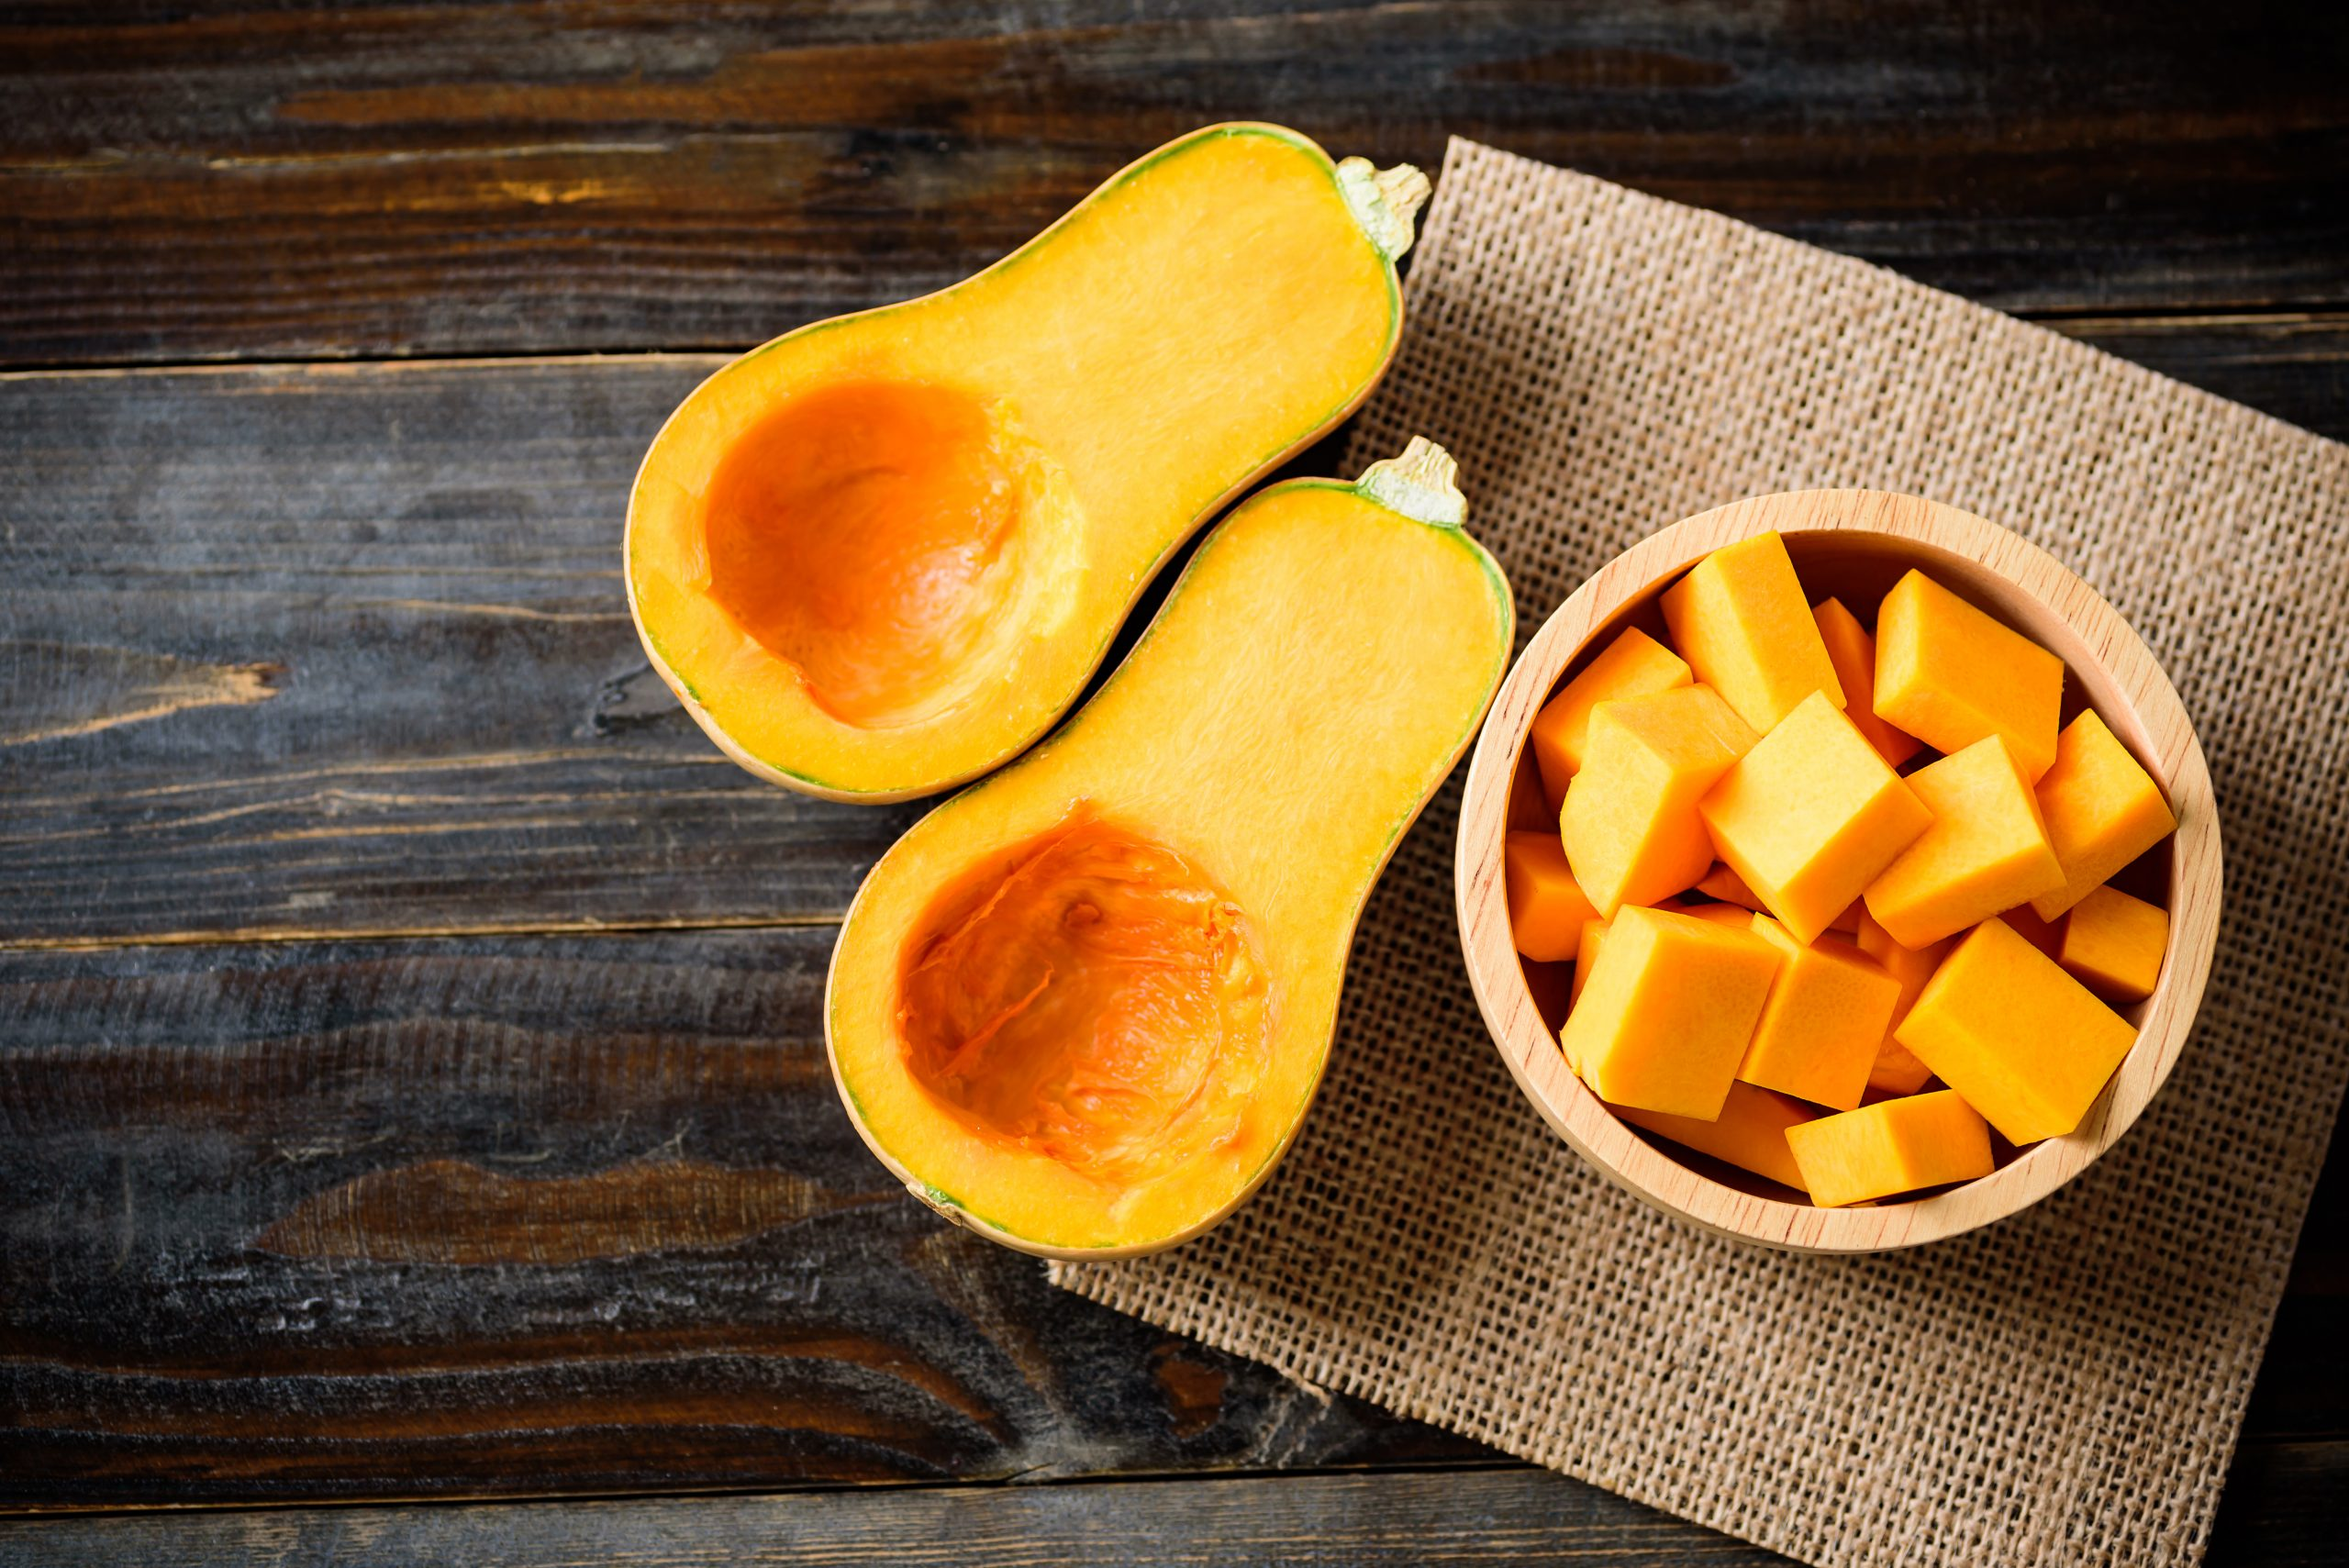 There are many ways to prepare butternut squash. It is high in health-supporting nutrients such as vitamin A and potassium, and it's a good source of fibre, vitamin C, calcium and is also low in carbohydrates and calories. - RF Stock